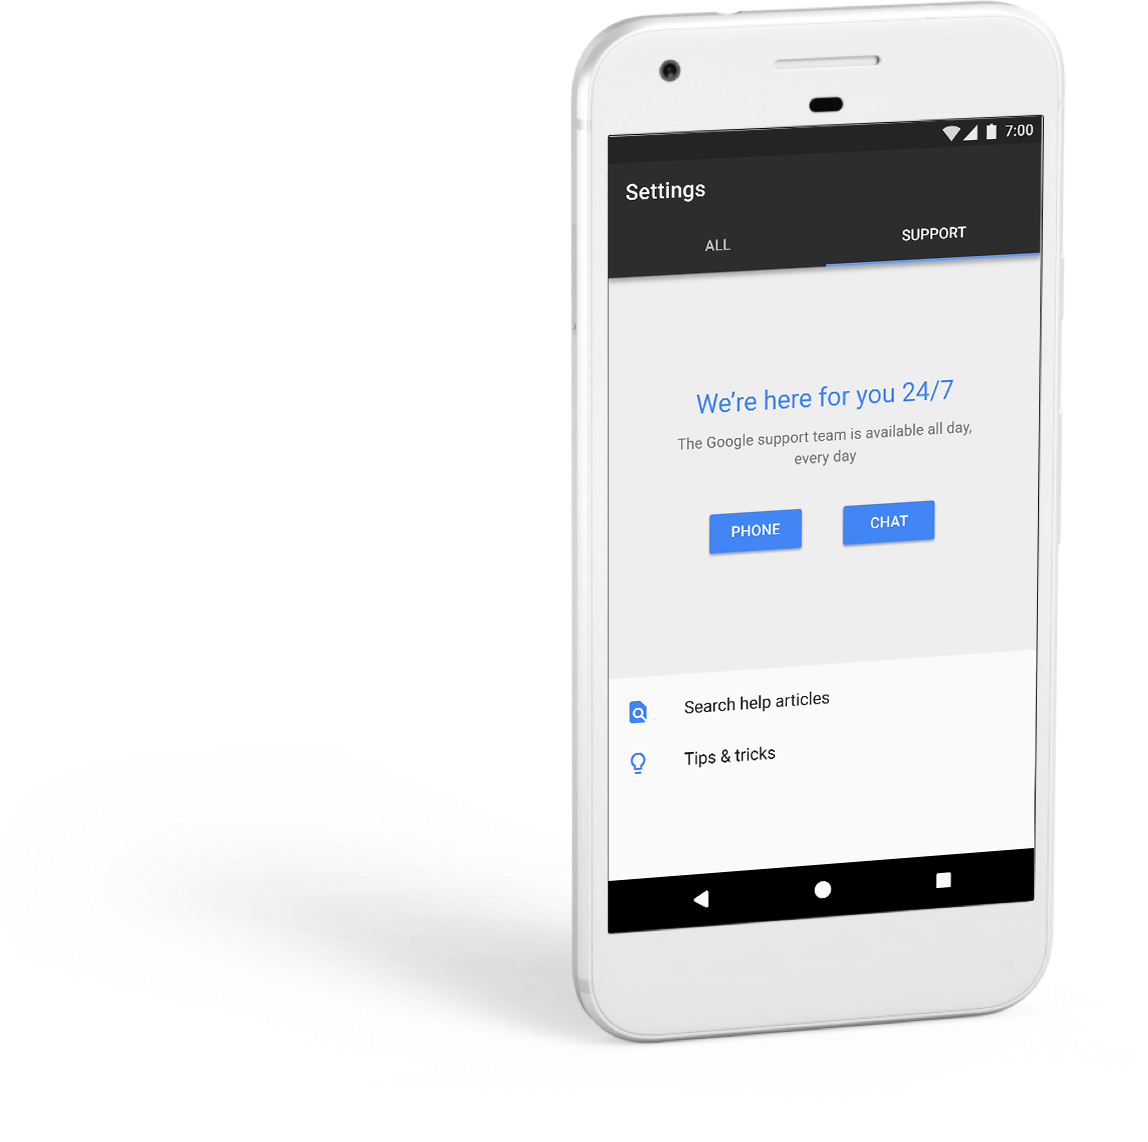 What Does Google's Pixel Phone Line Offer Small Business Users? 24/7 Support